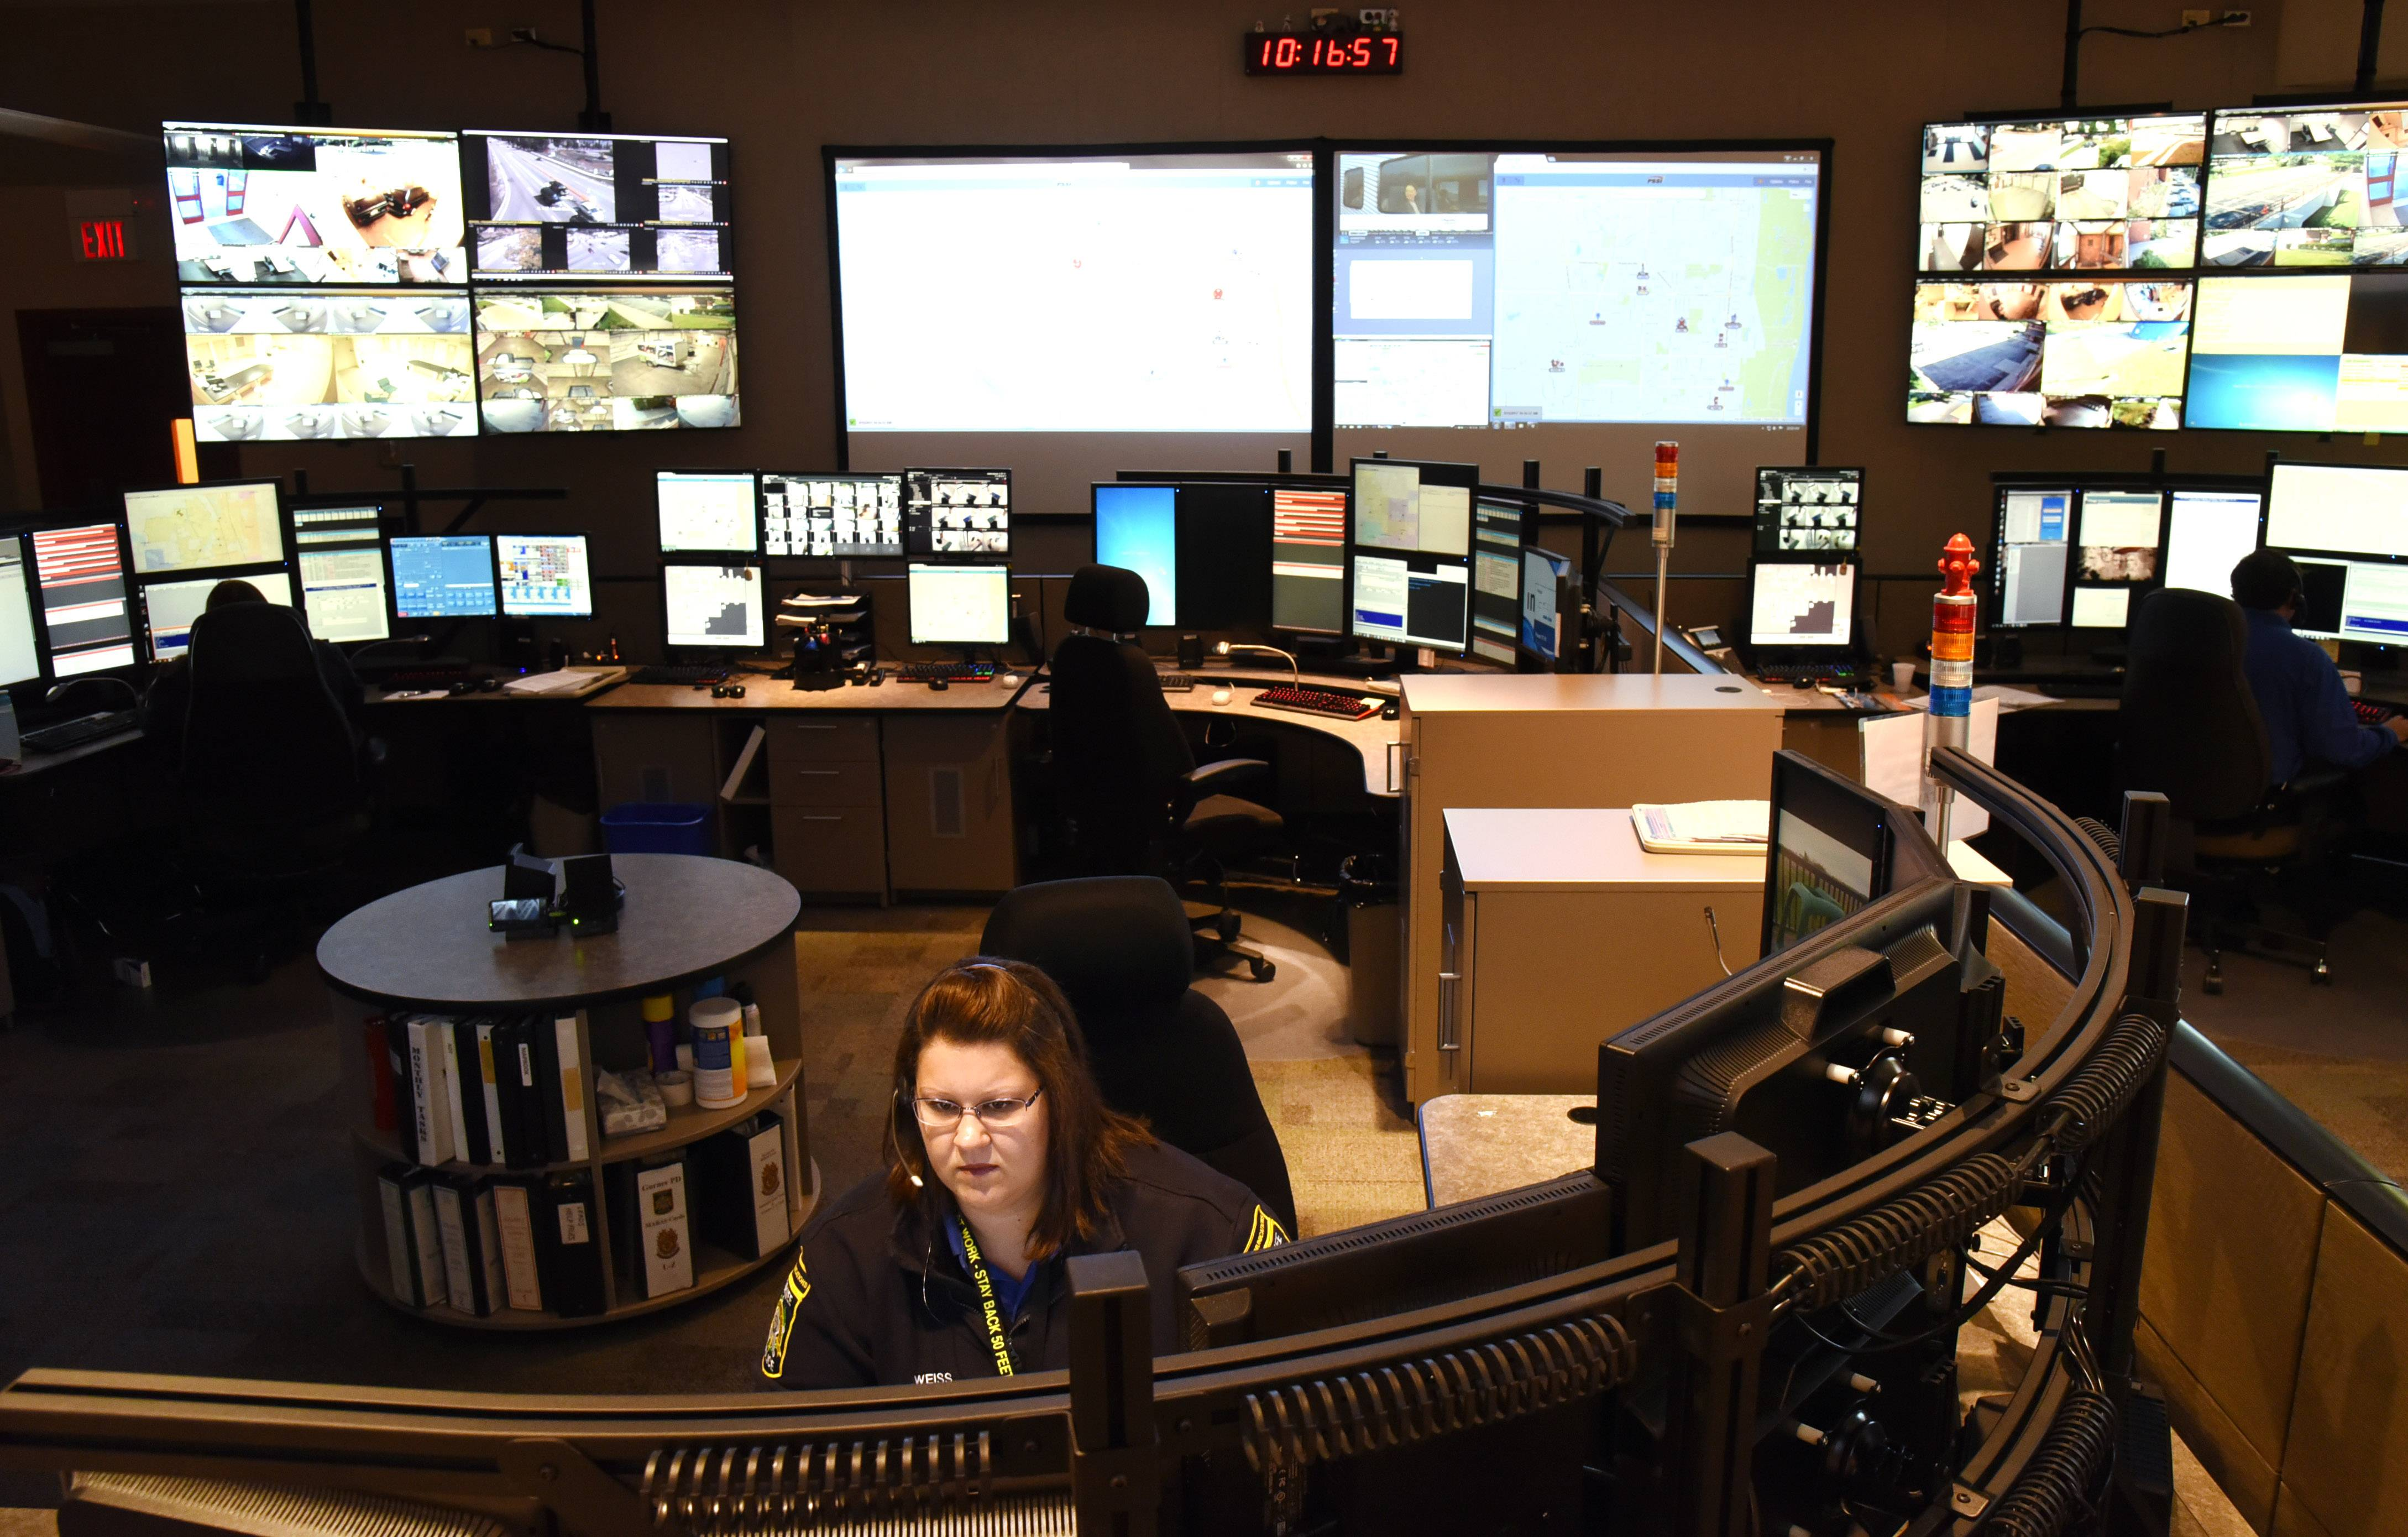 The dispatch center in the Gurnee Police Department recently began providing service to Beach Park and Zion. Since a state law in 2015 that said a 911 operation cannot serve fewer than 25,000 residents, Gurnee has actively been recruiting smaller towns in the area.